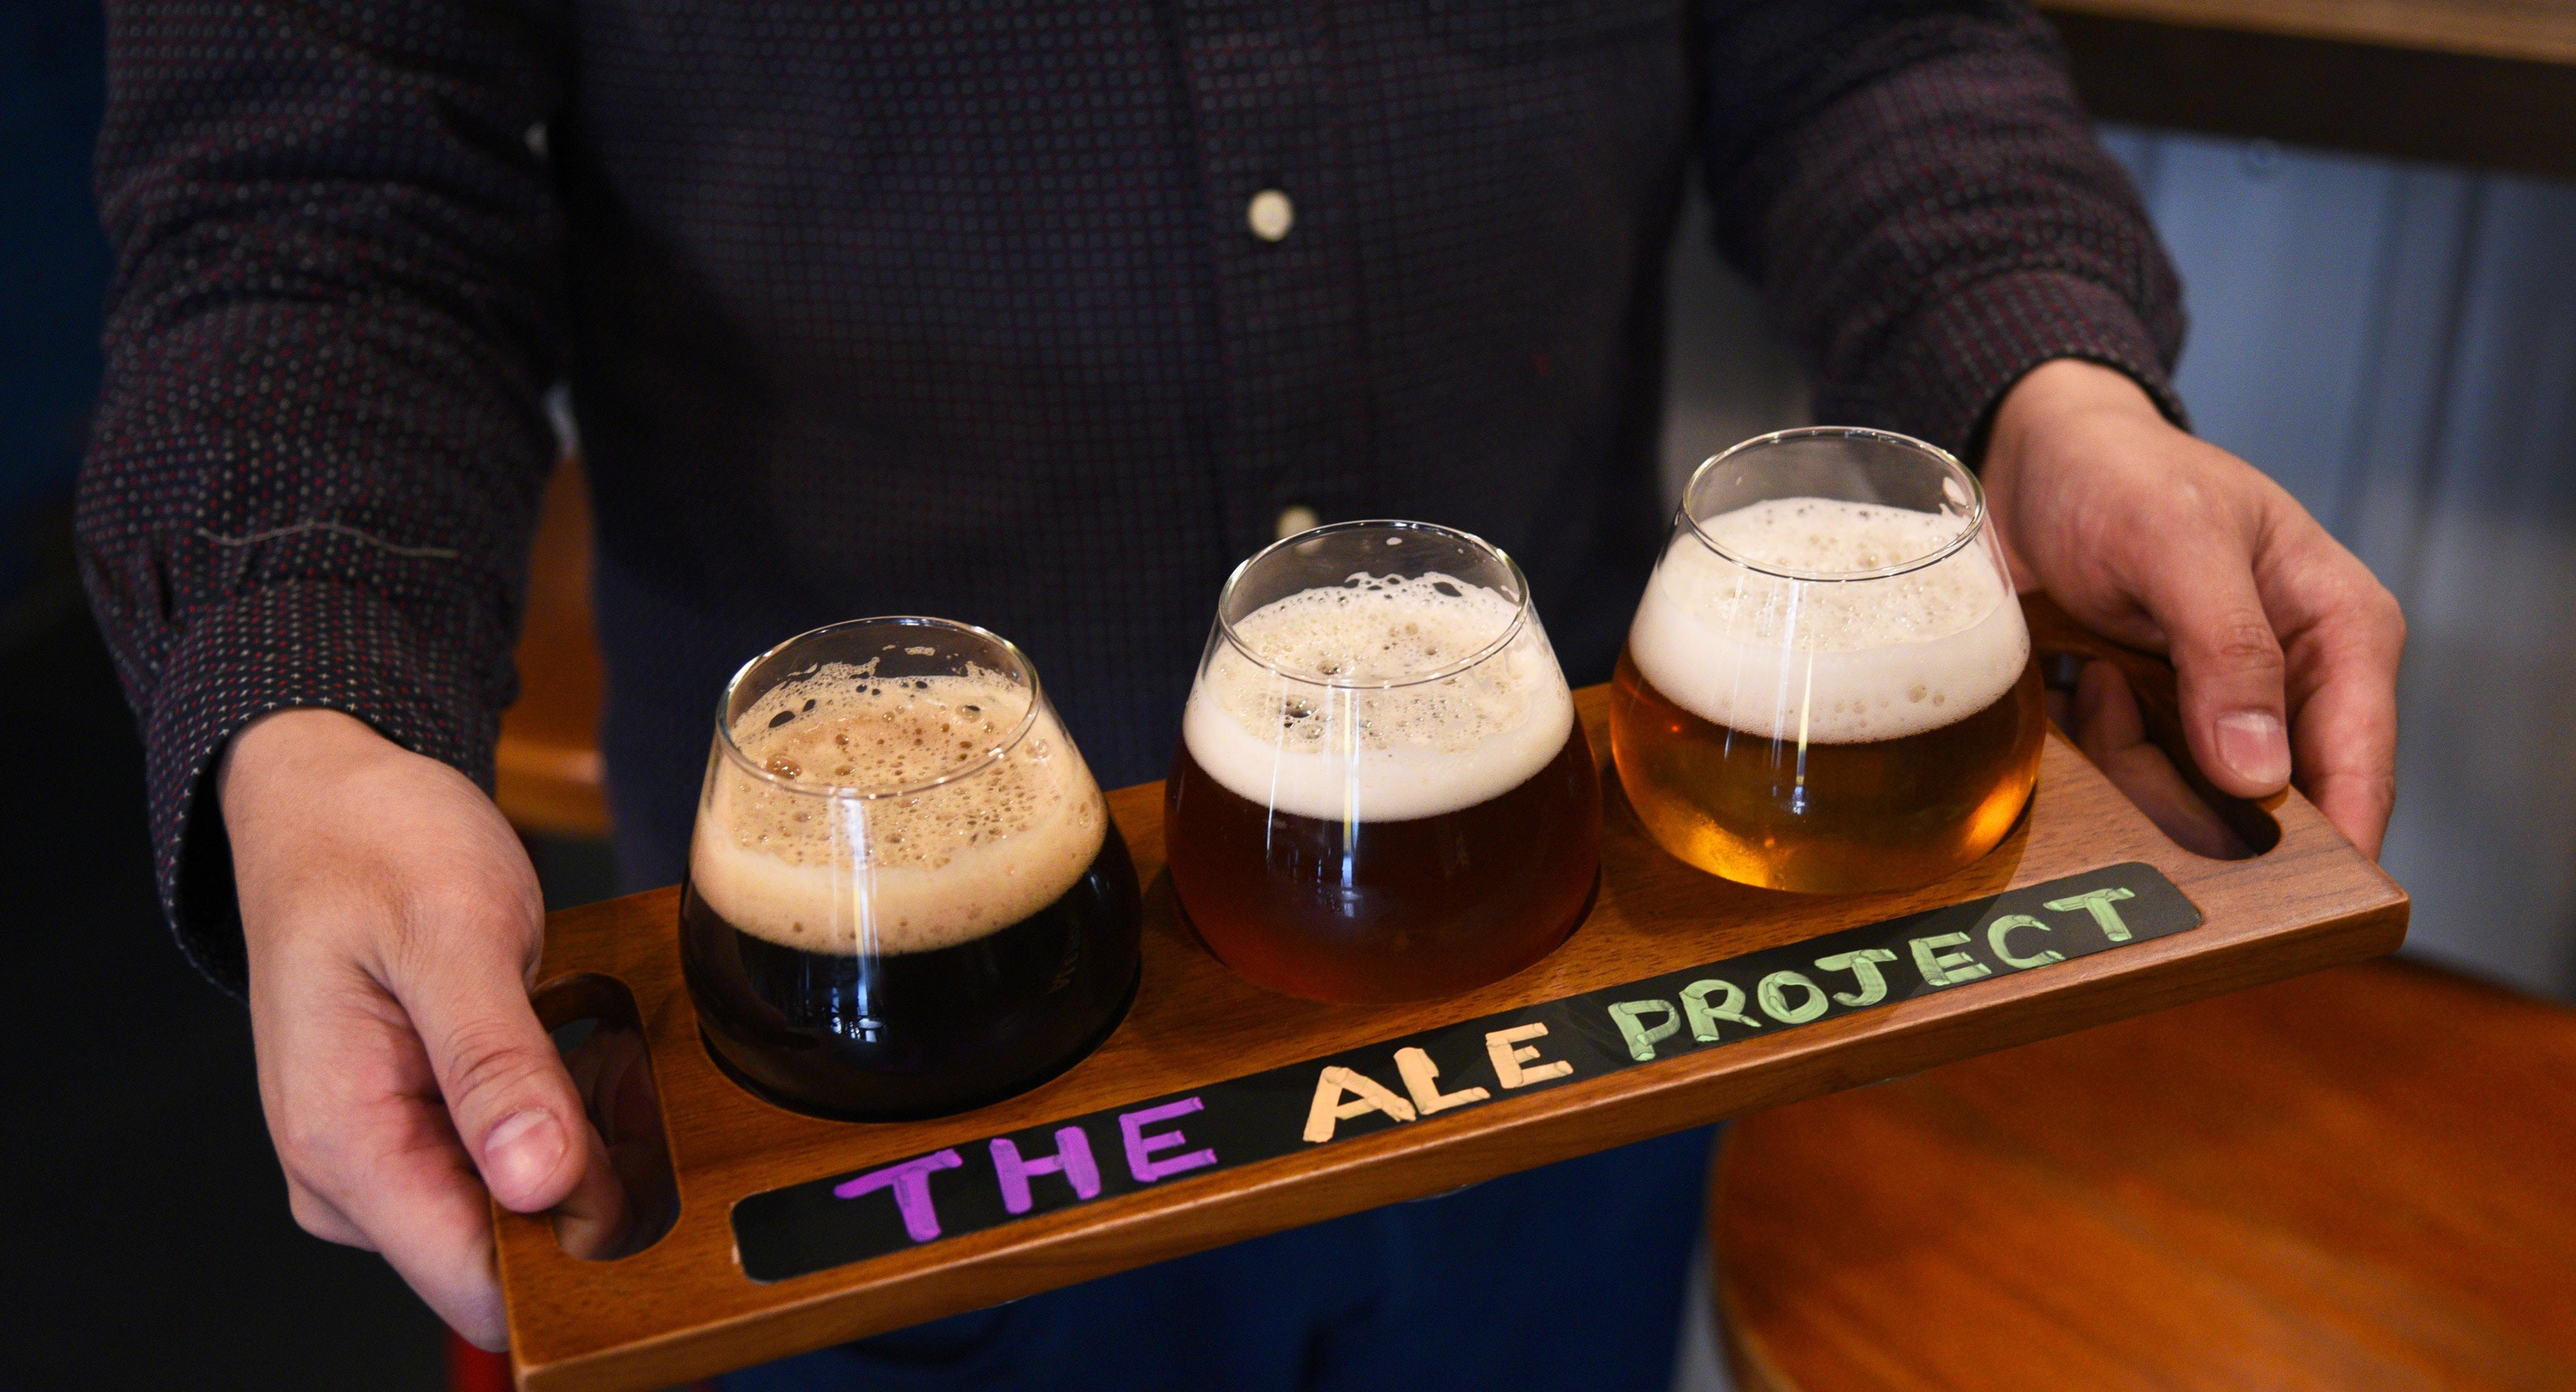 TAP: The Ale Project - Mong Kok